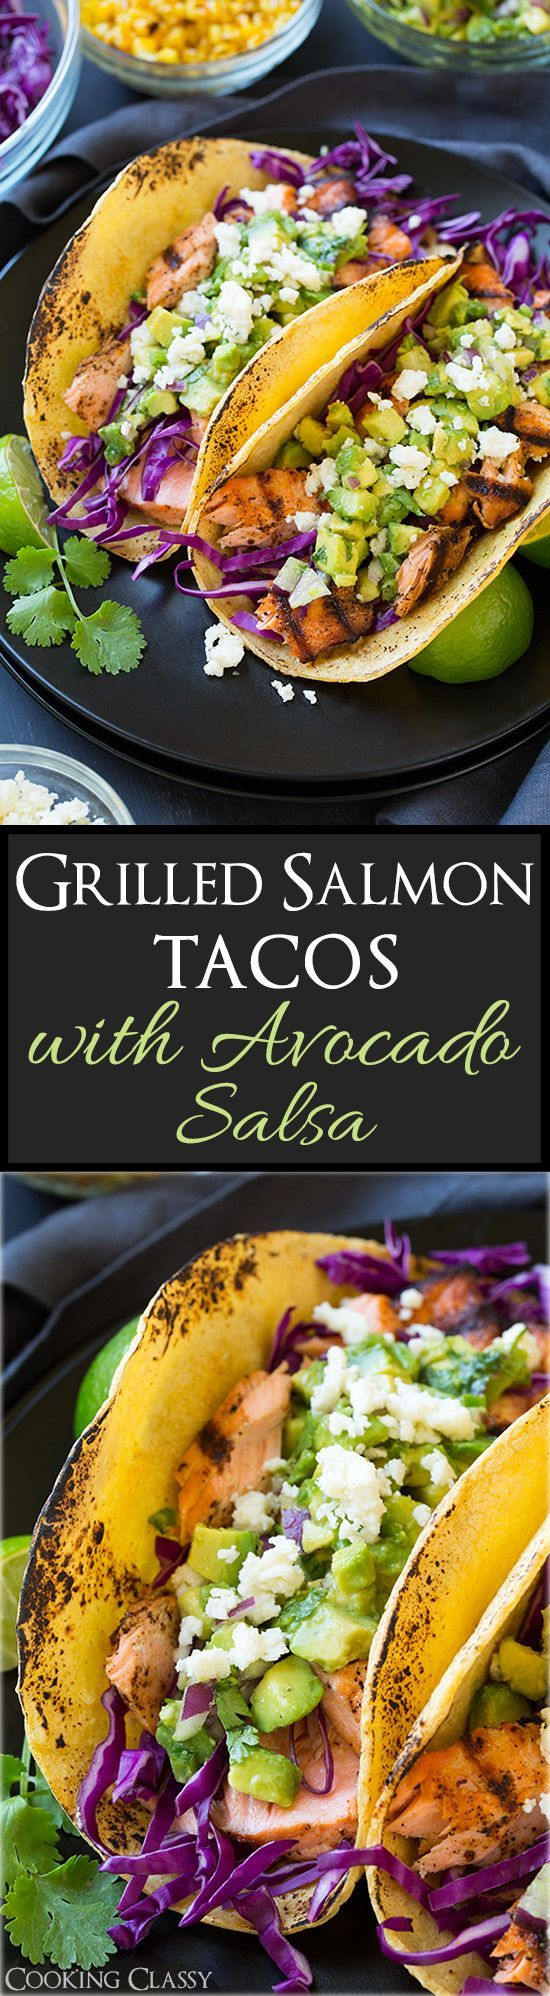 Grilled Salmon Tacos with Avocado Salsa (Cooking Classy) | Classy, Cooking and Salsa